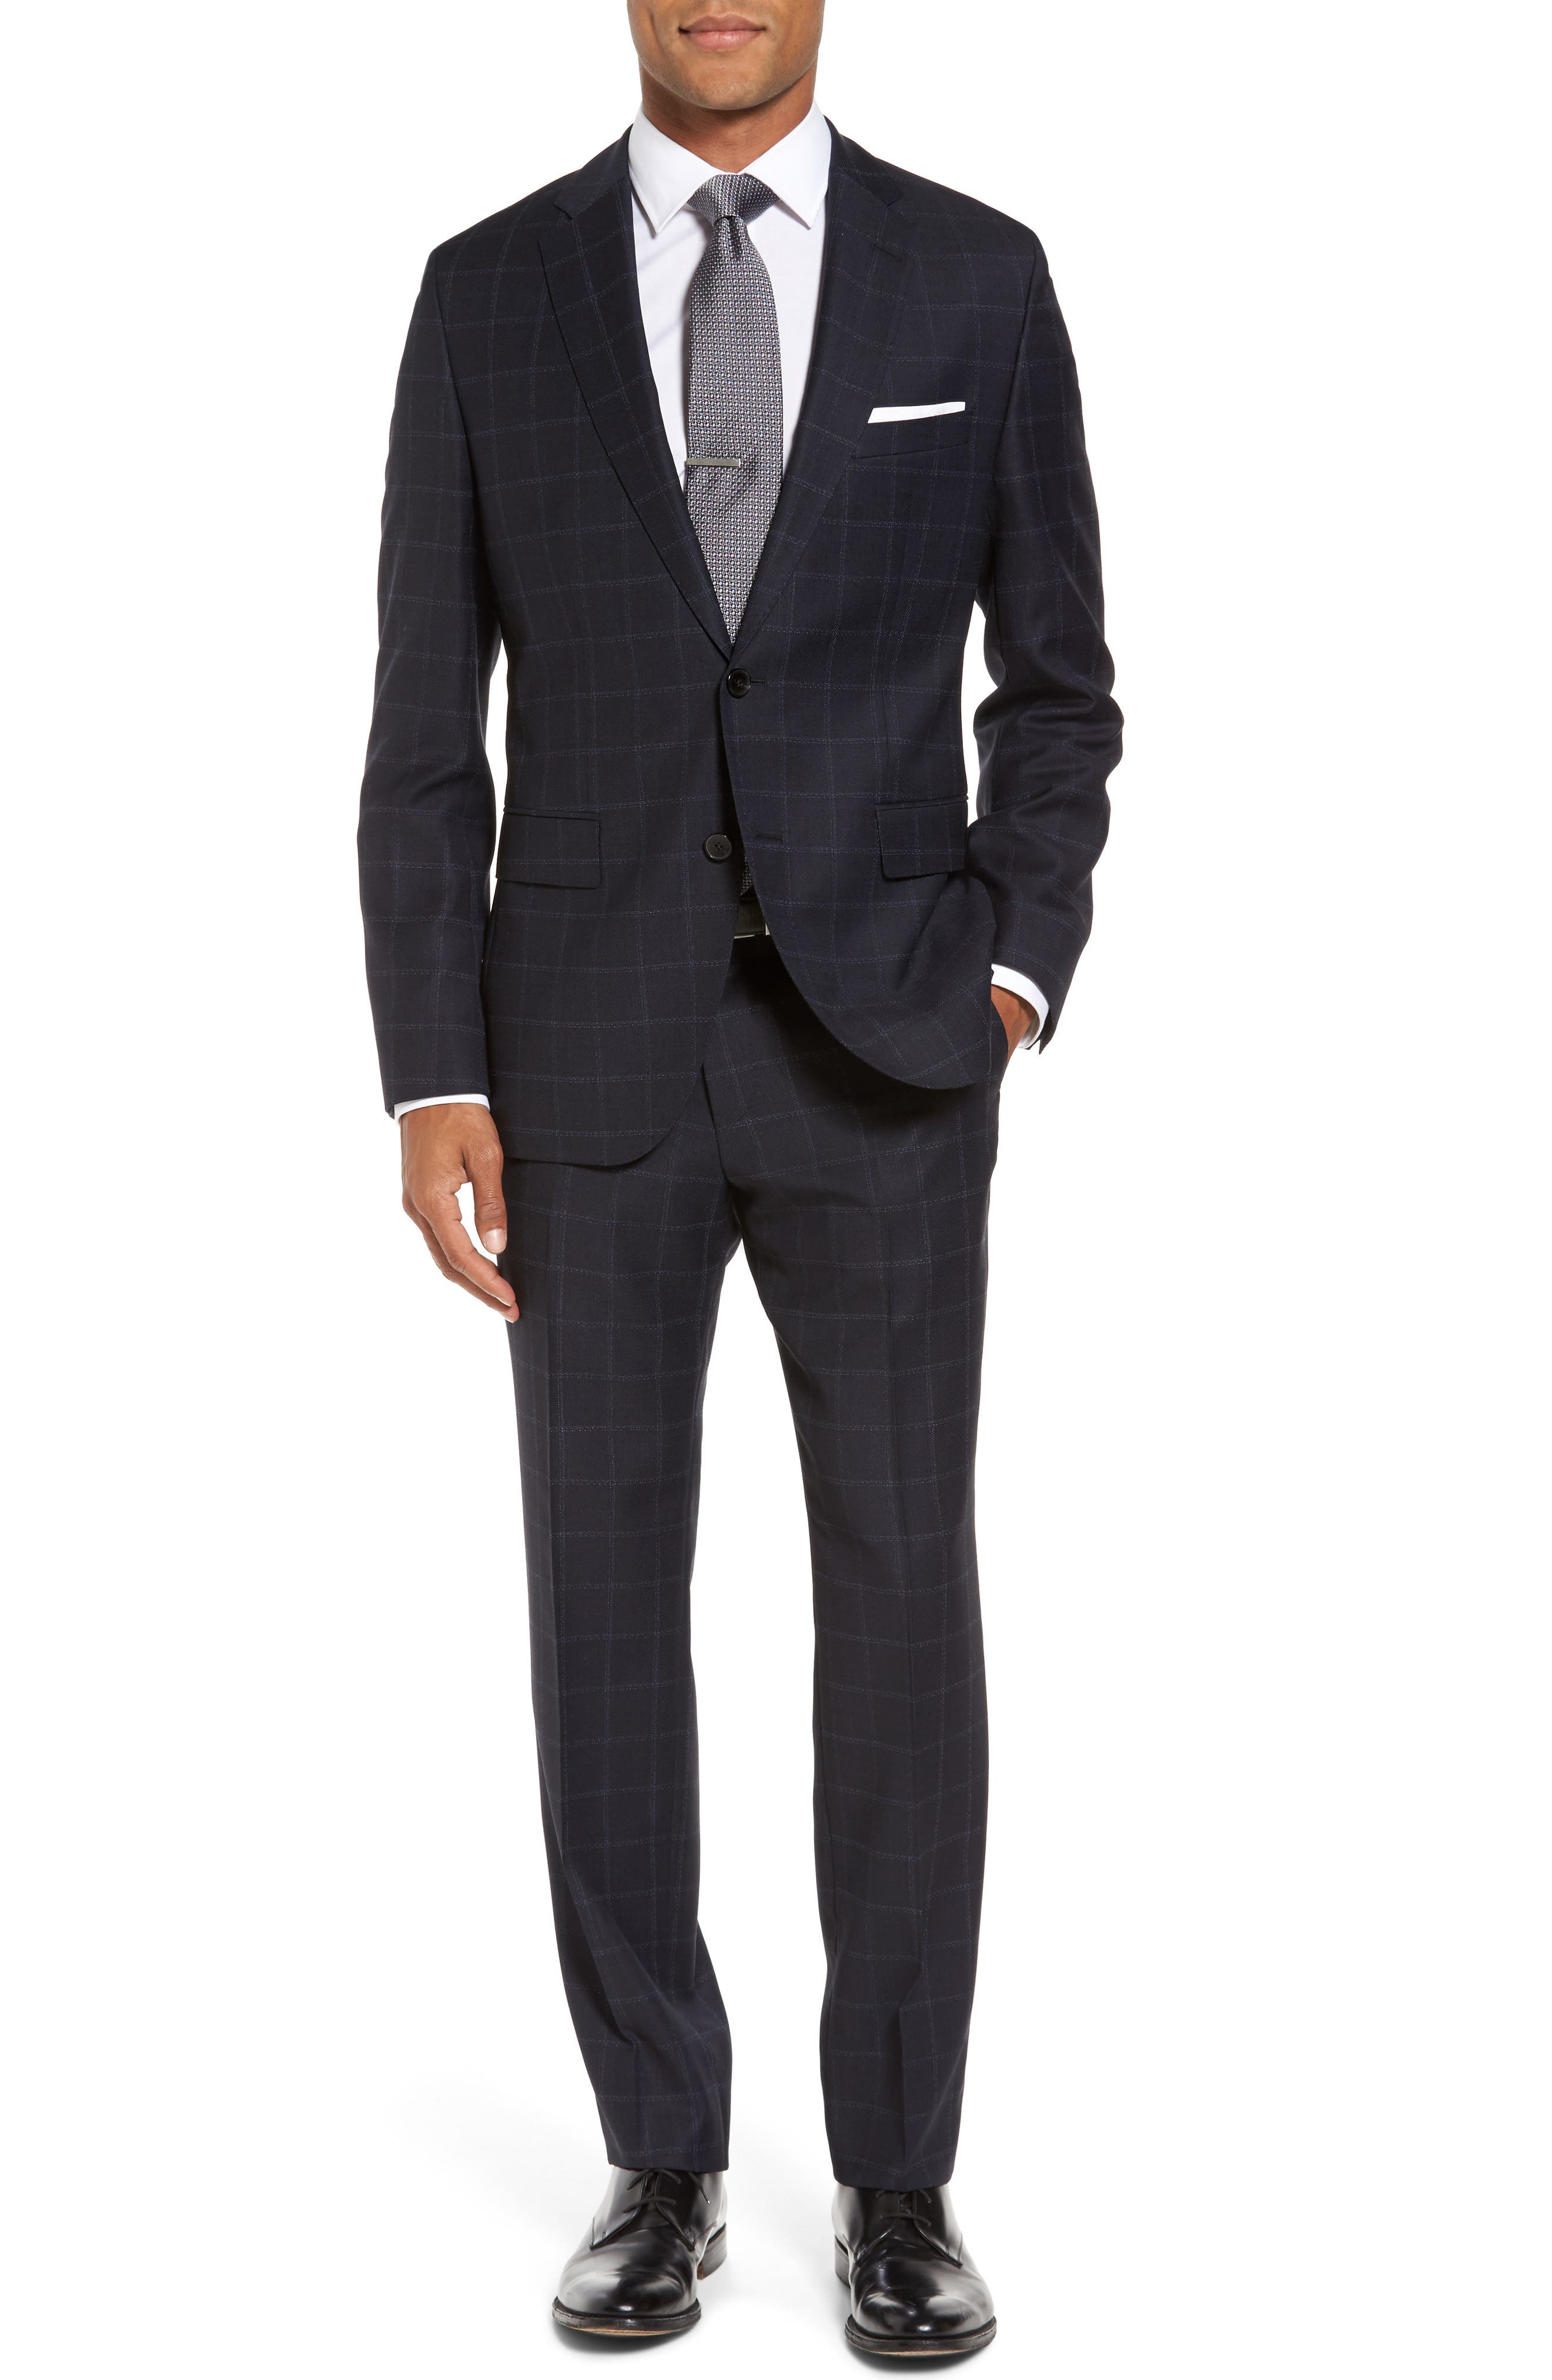 Main Image - BOSS Johnstons/Lenon Classic Fit Windowpane Wool Suit